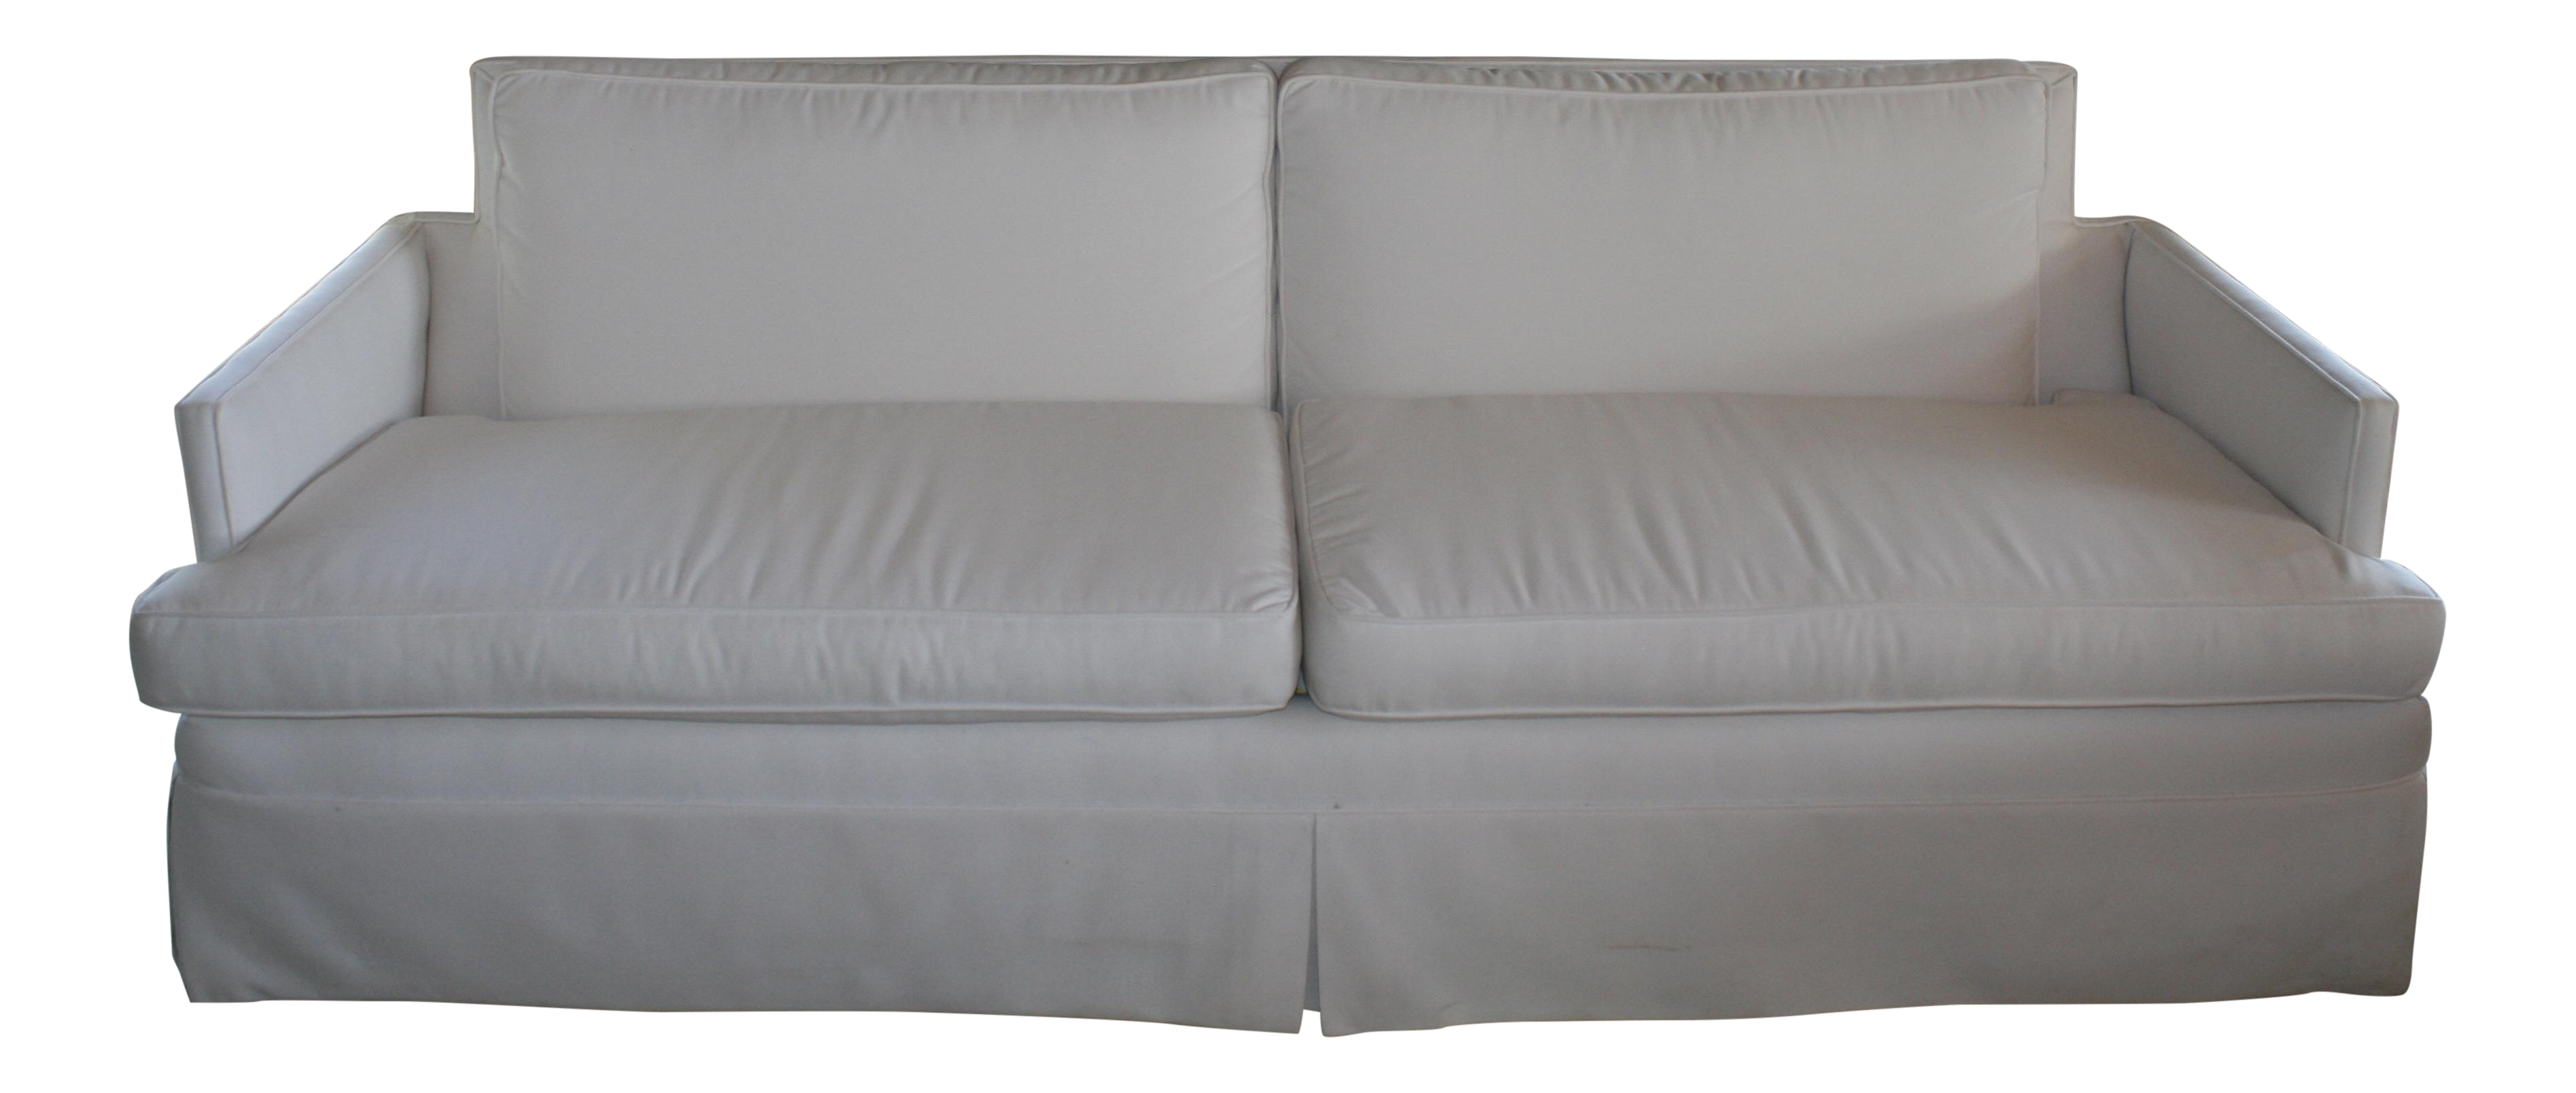 Surprising White Sunbrella Mid Century Sofa Cjindustries Chair Design For Home Cjindustriesco